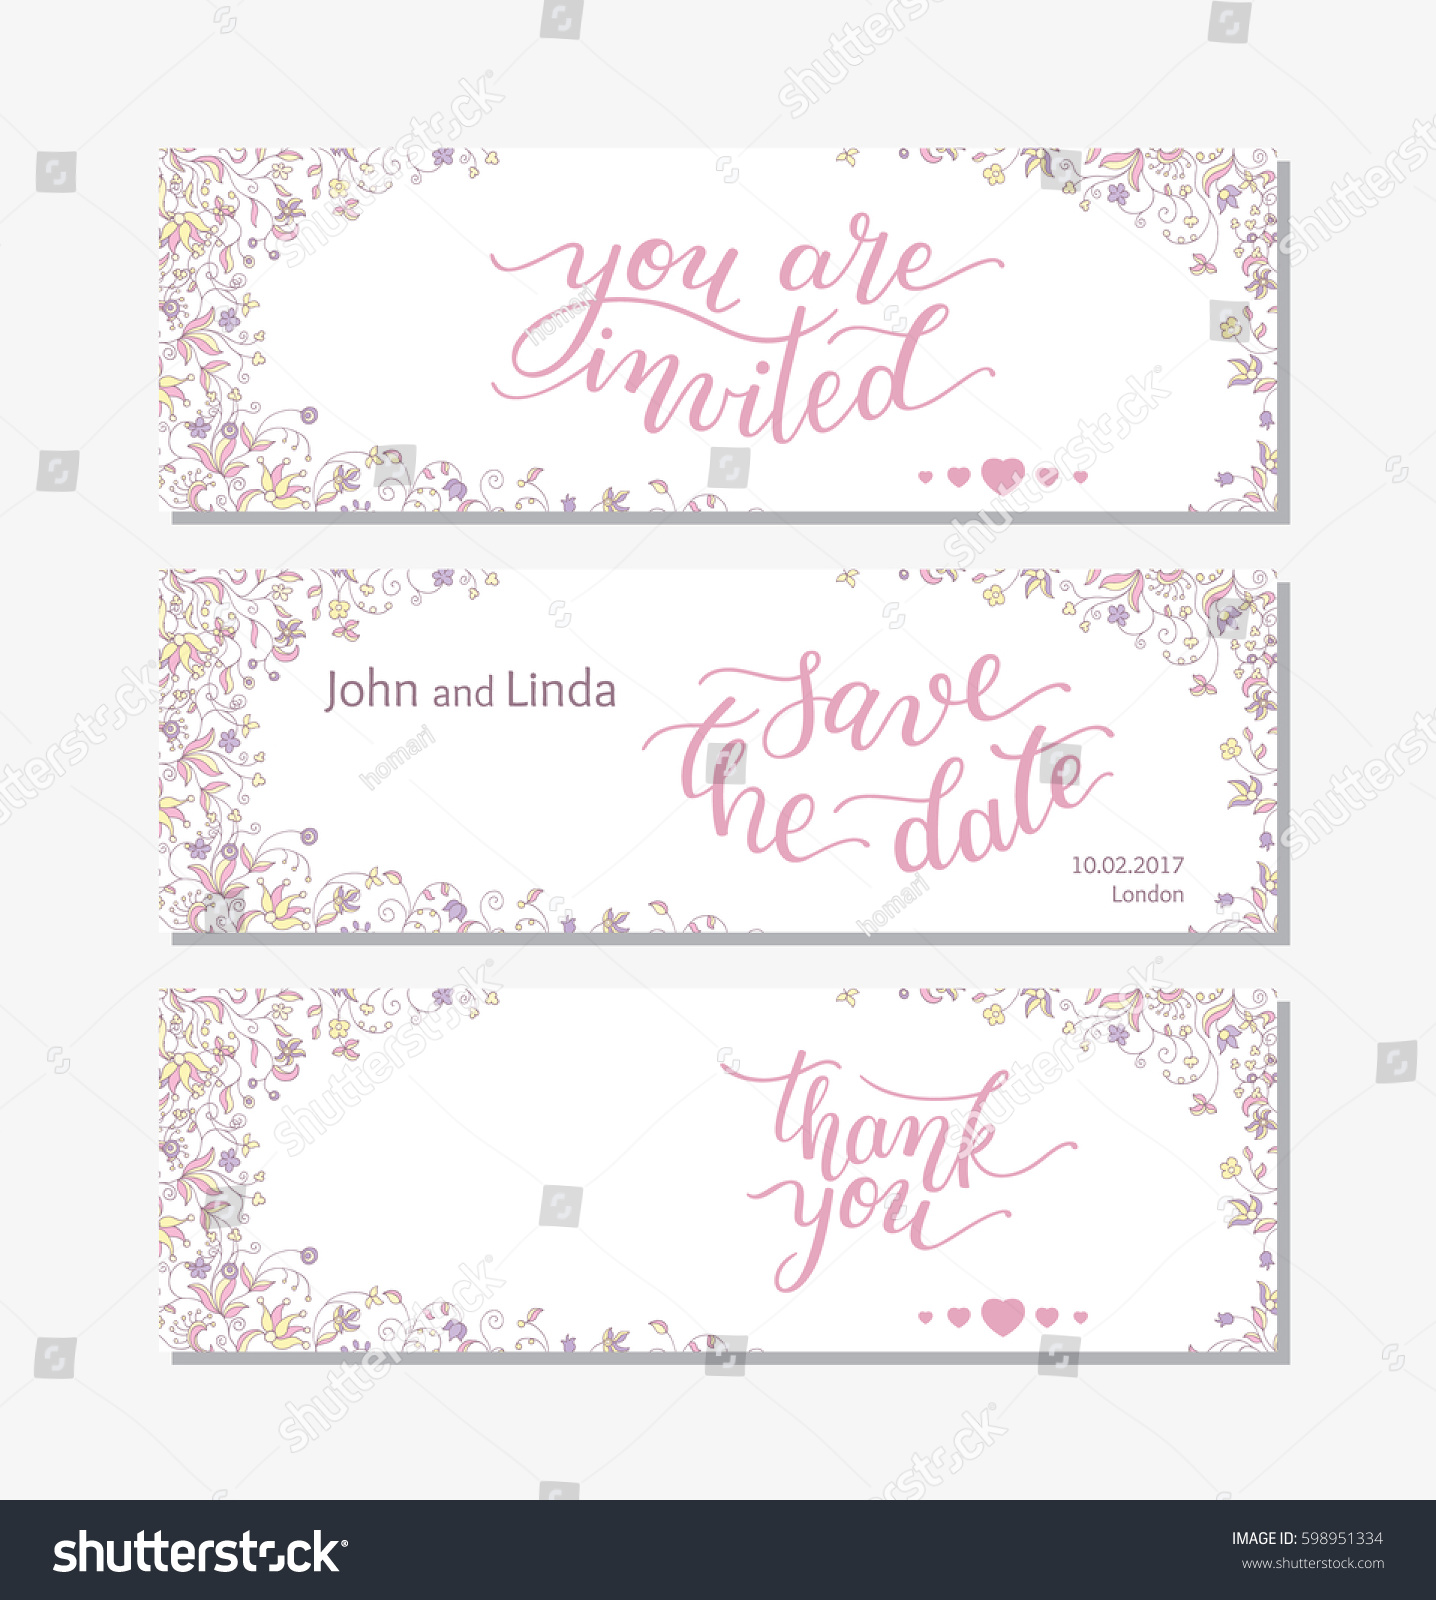 wedding set template flowers hand lettering stock vector 598951334 shutterstock. Black Bedroom Furniture Sets. Home Design Ideas